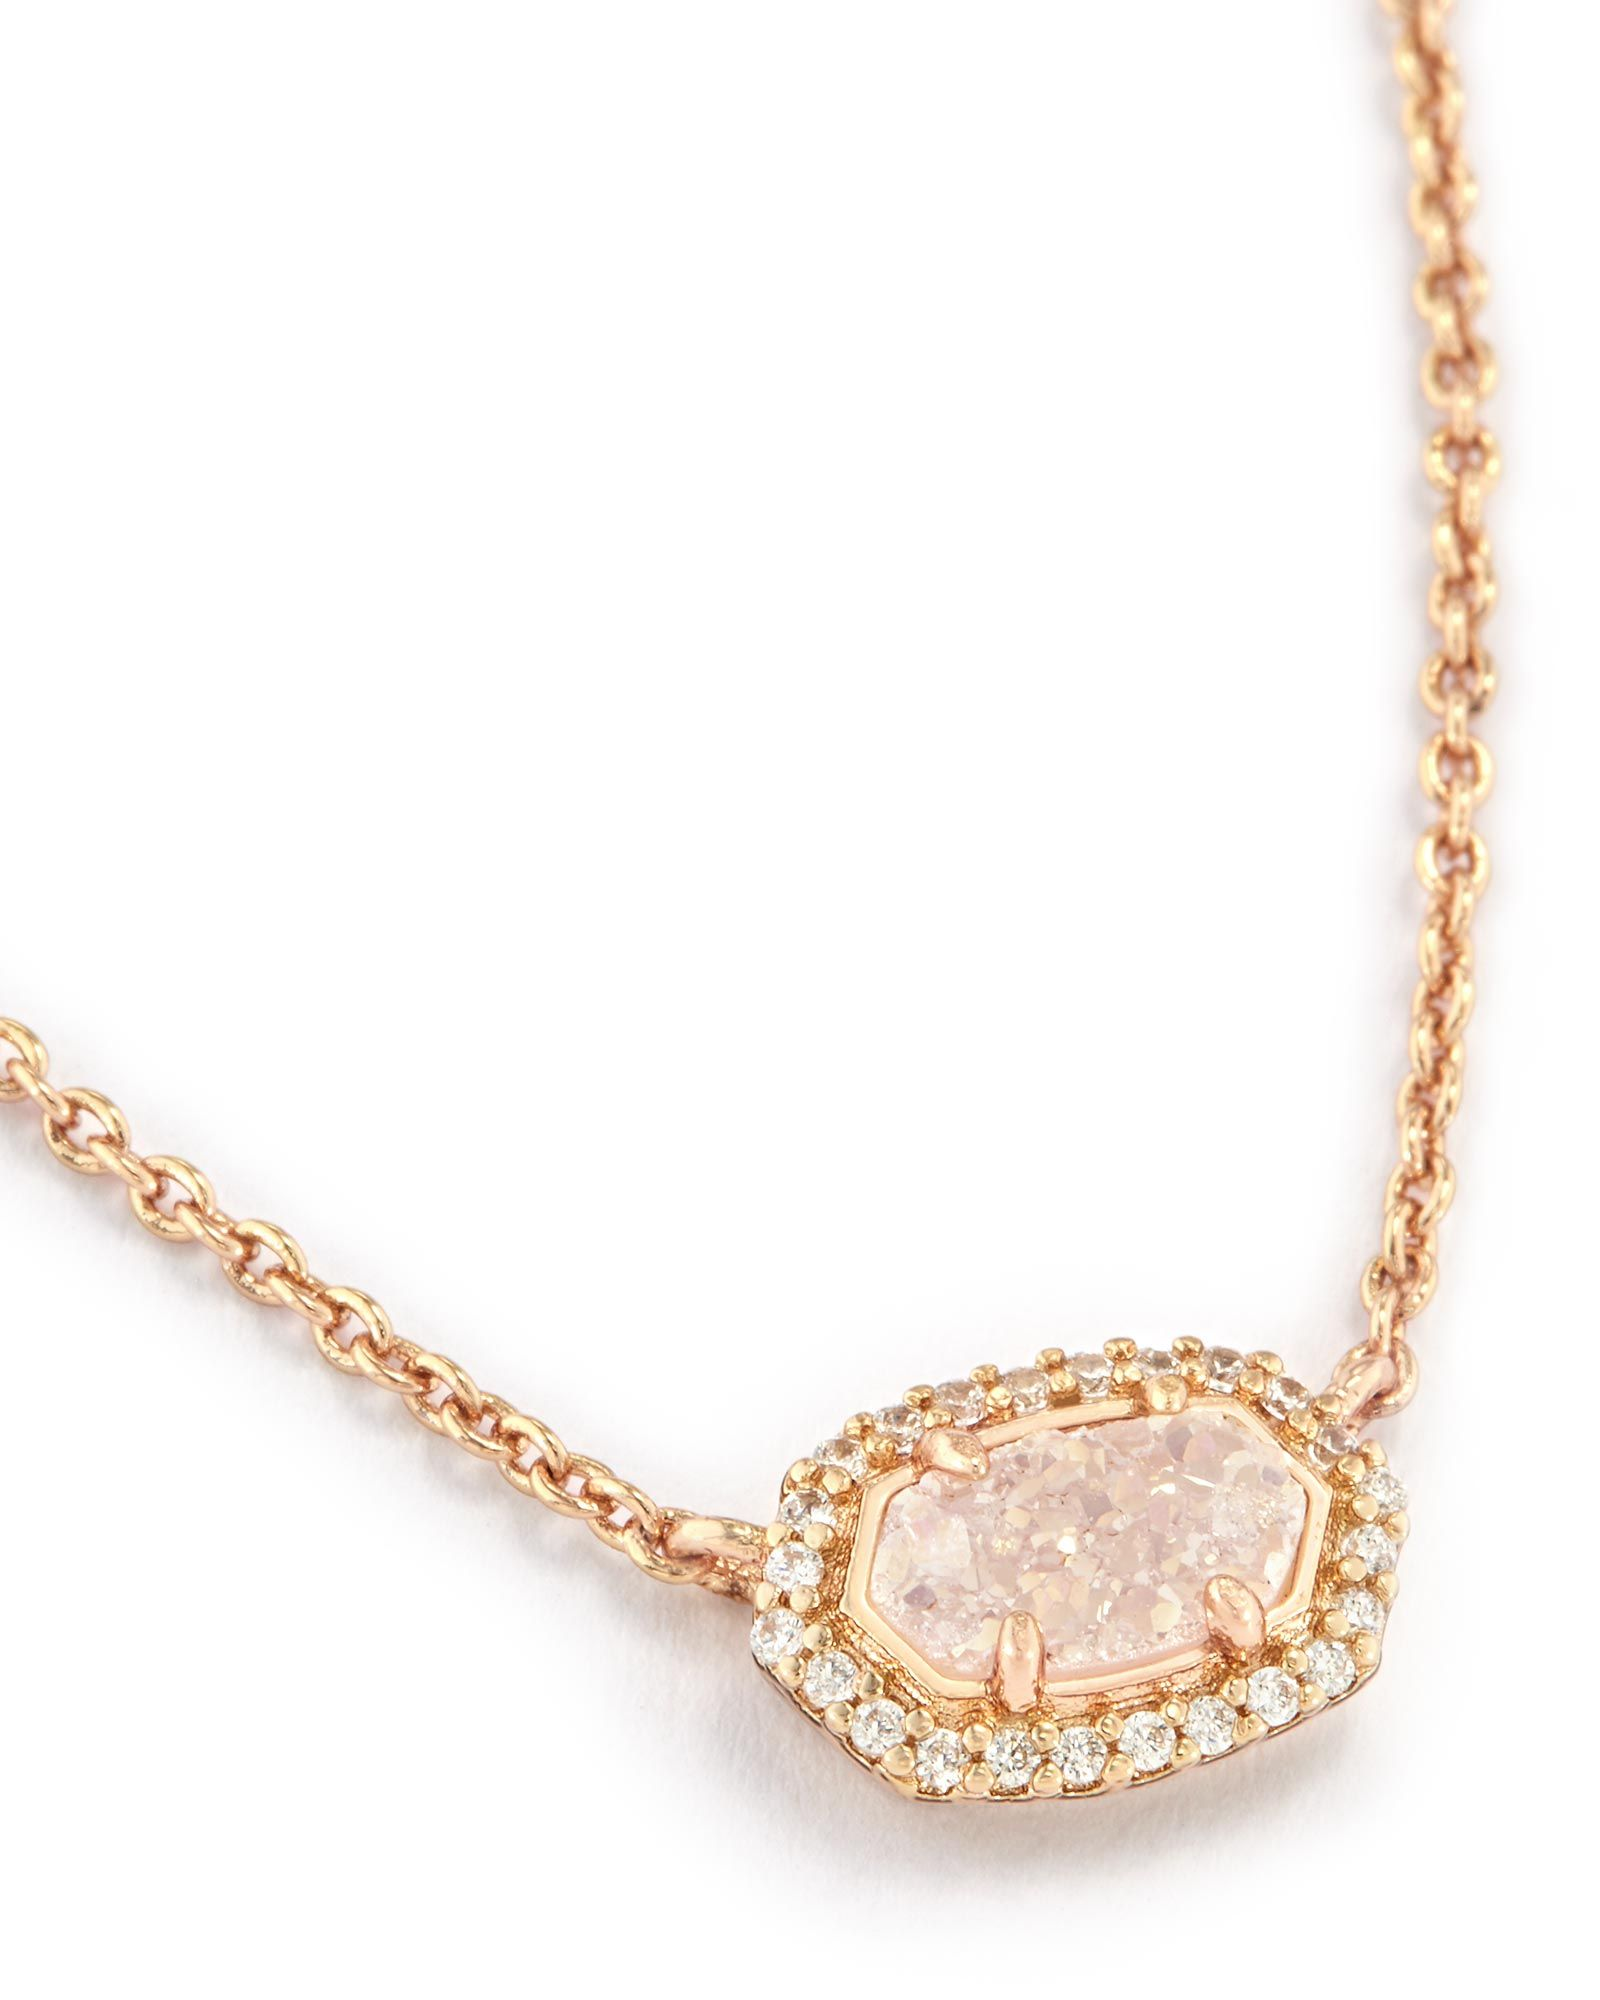 Chelsea Pendant Necklace In Rose Gold Kendra Scott Rose Gold Jewelry Gold Jewelry Kendra Scott Jewelry